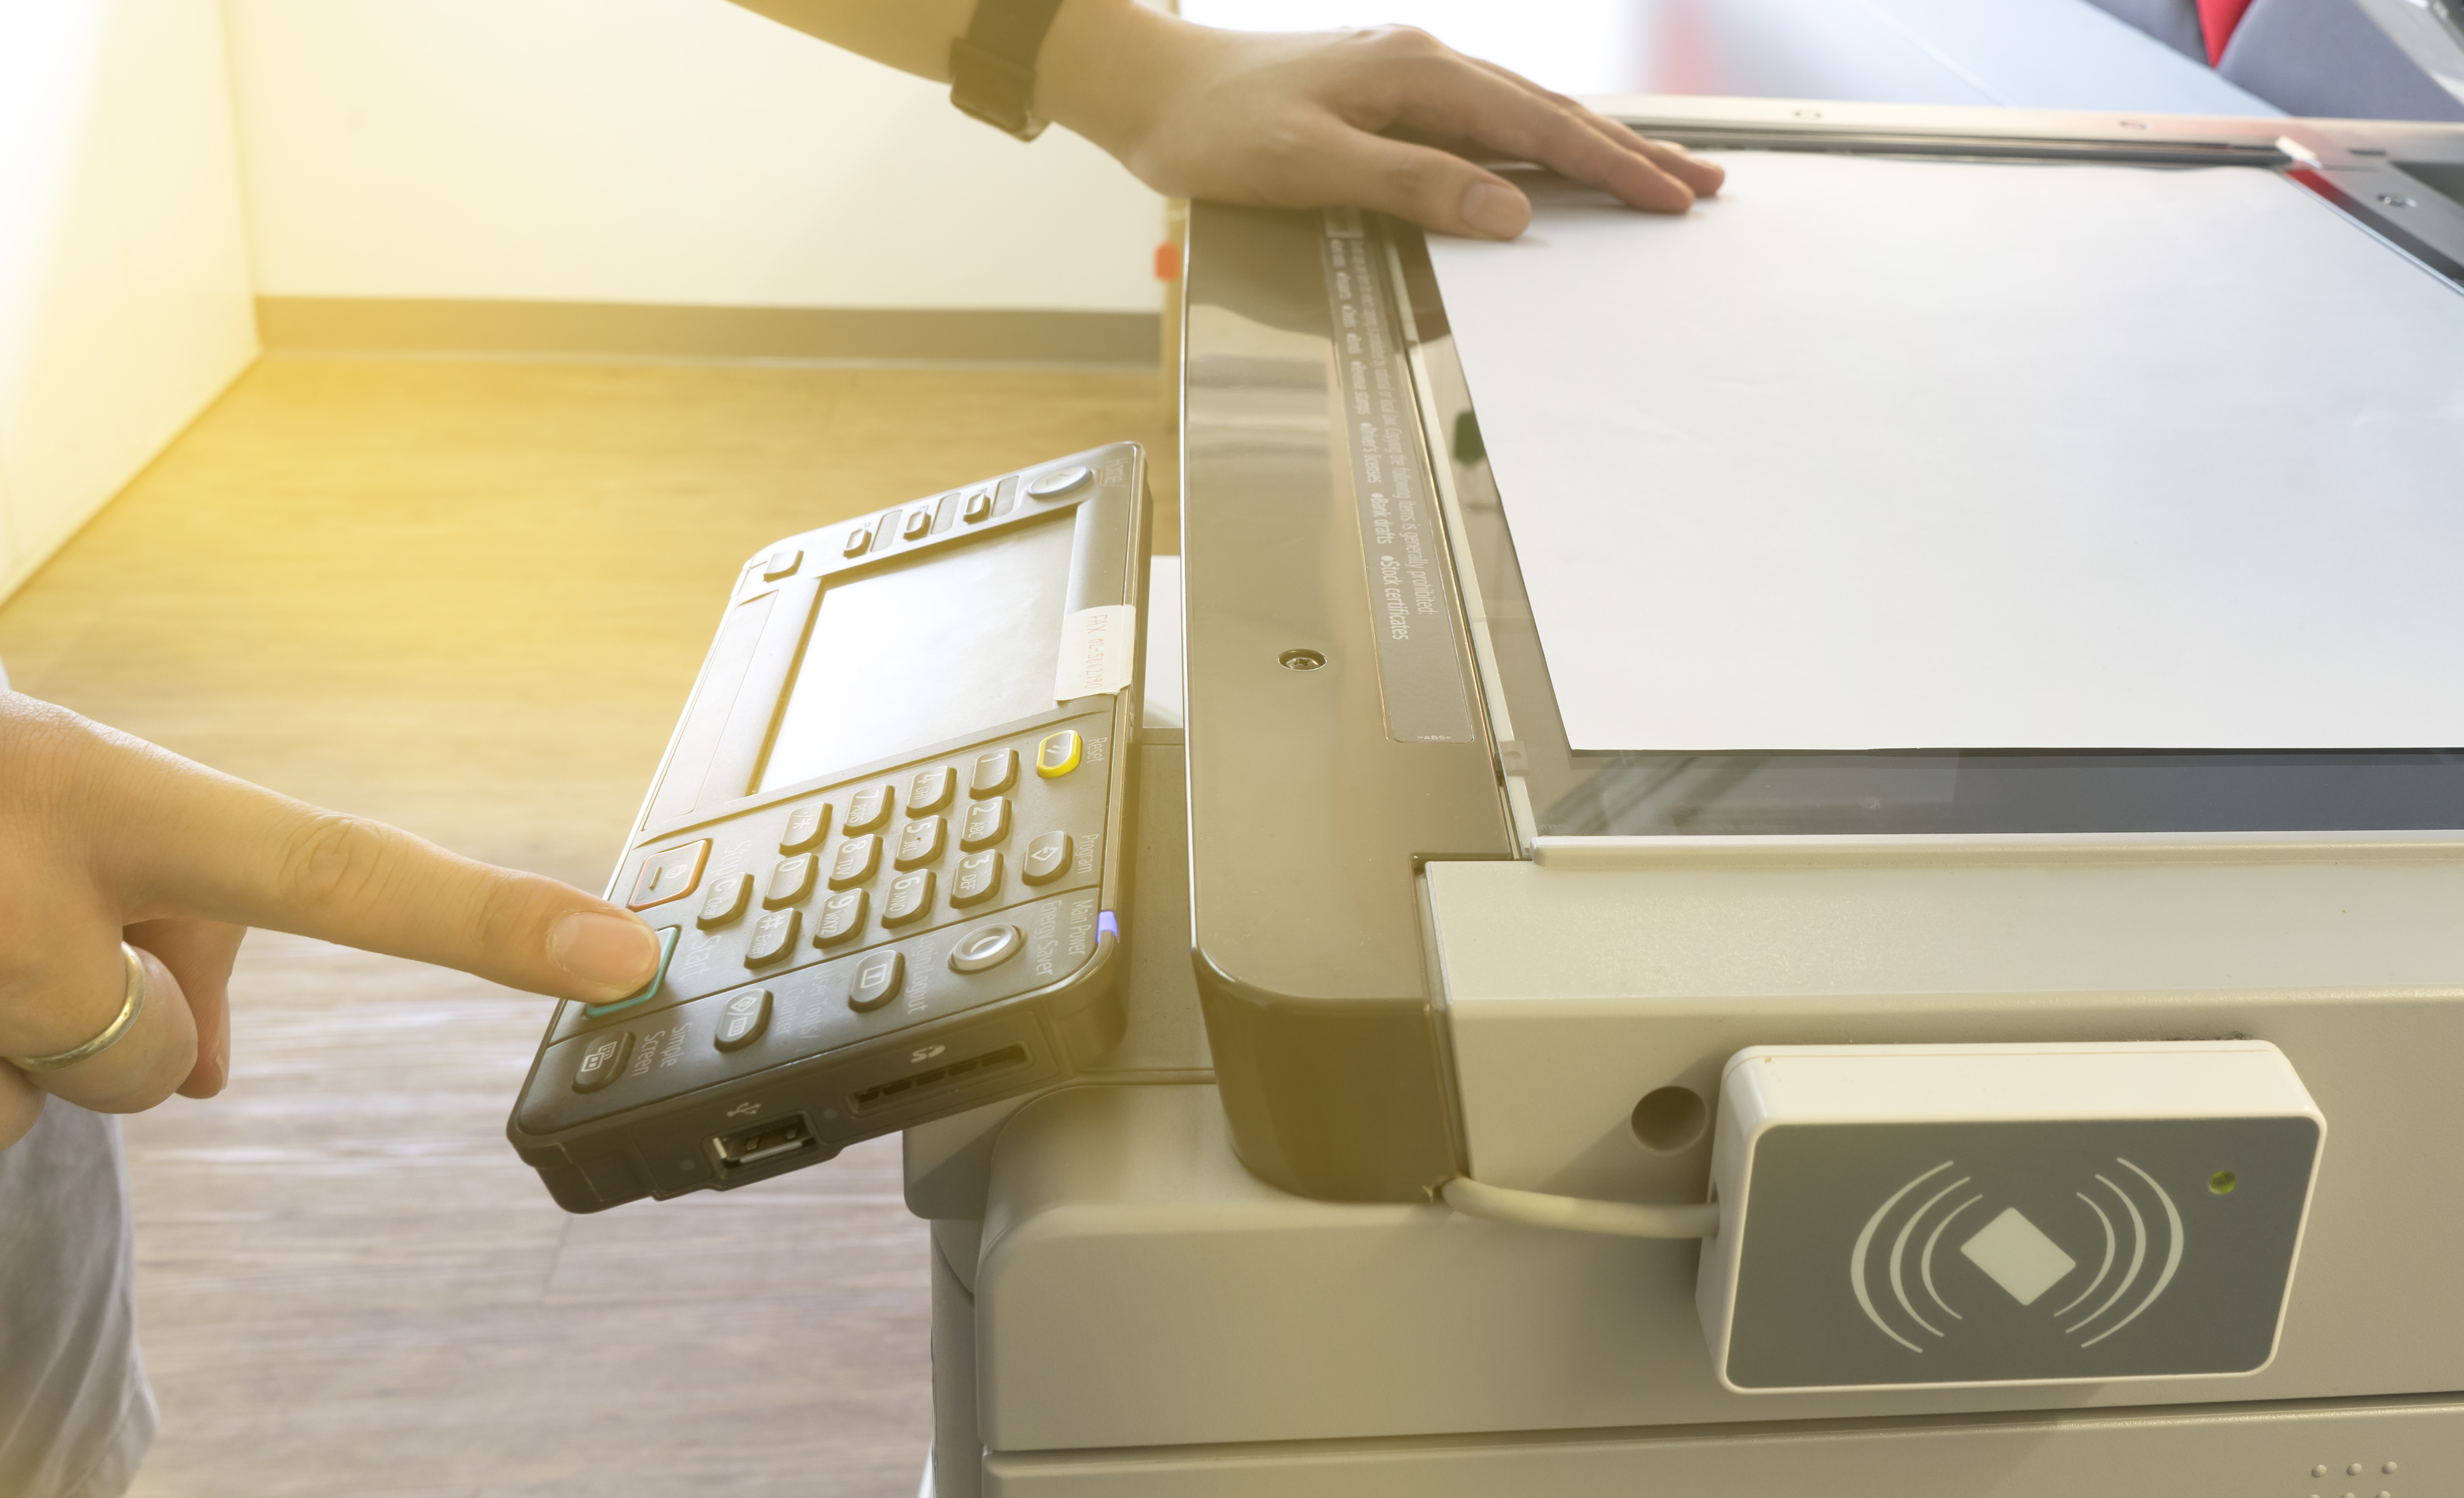 Fax Vulnerabilities Allow Hackers Access to Computer Network Data